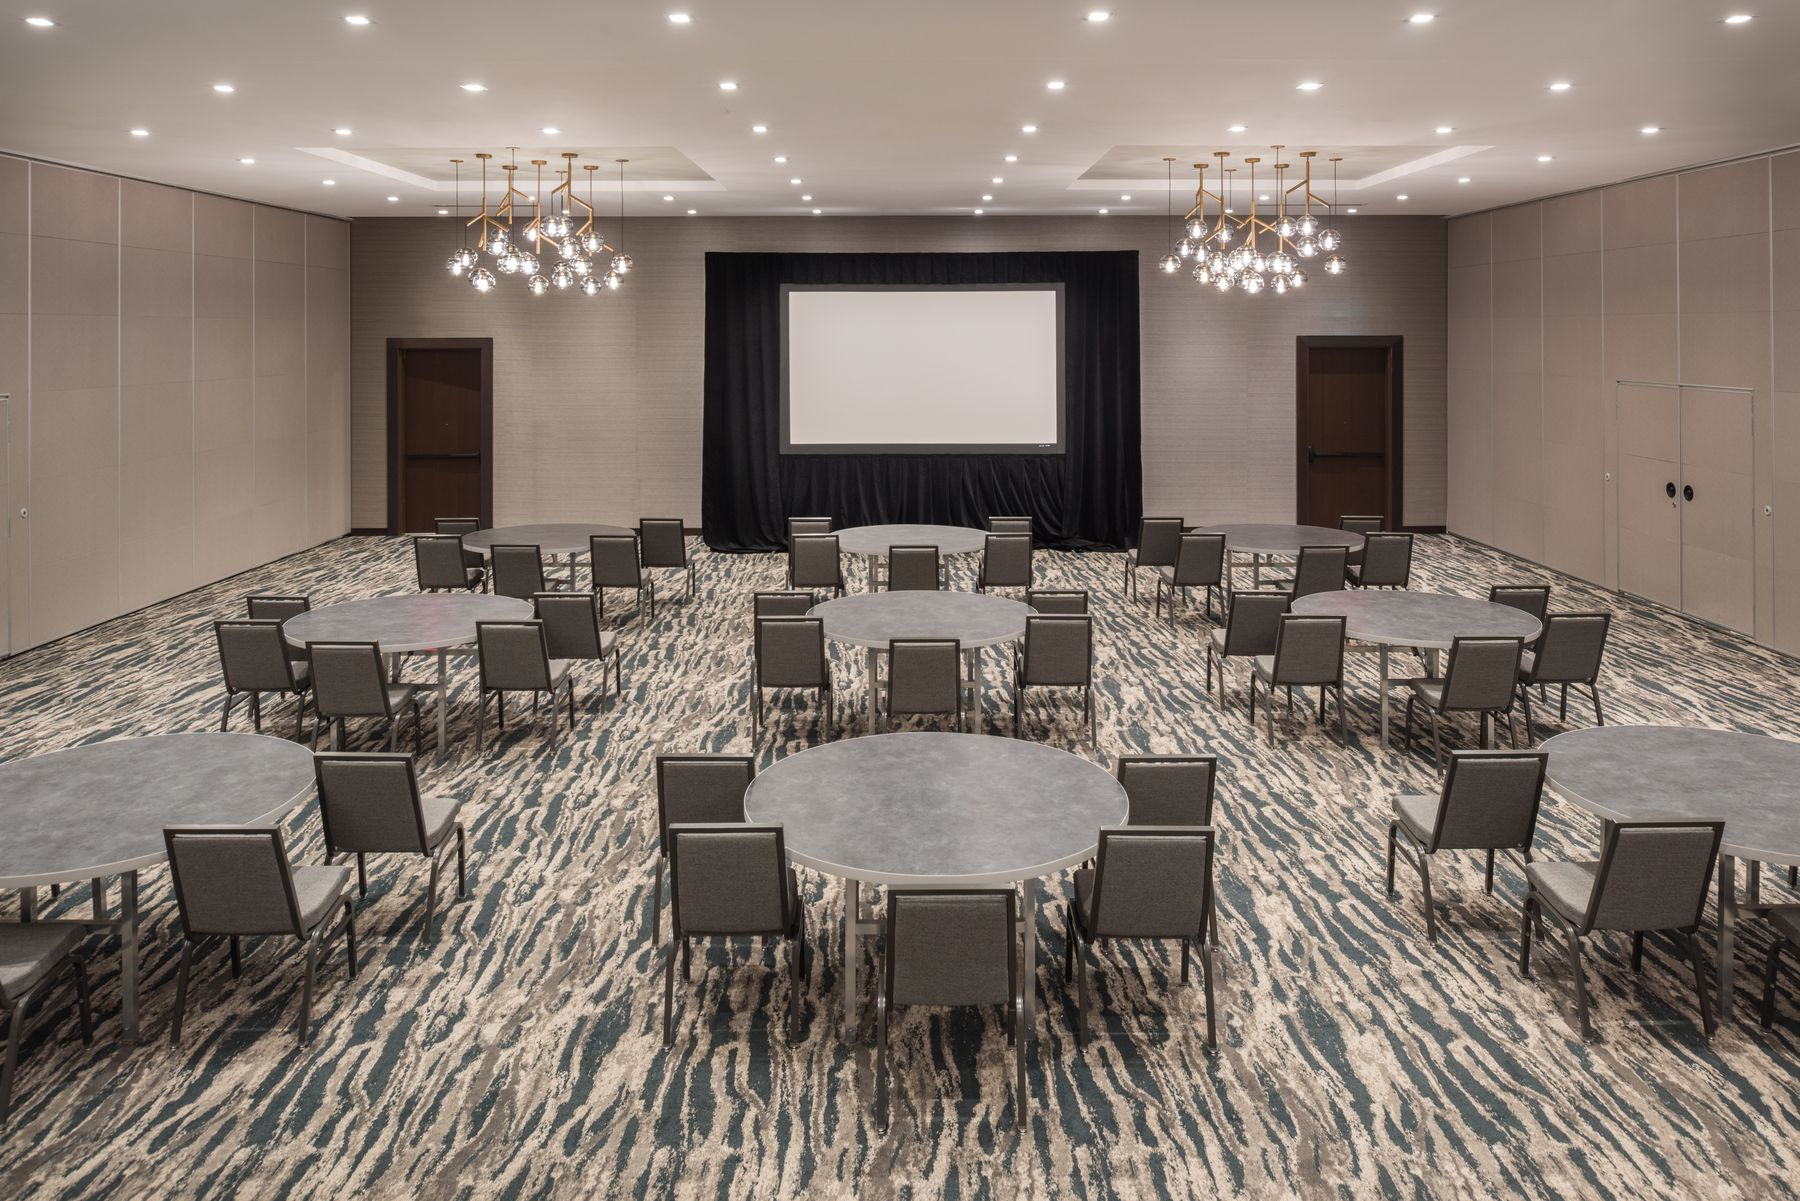 Meeting space set with banquet rounds